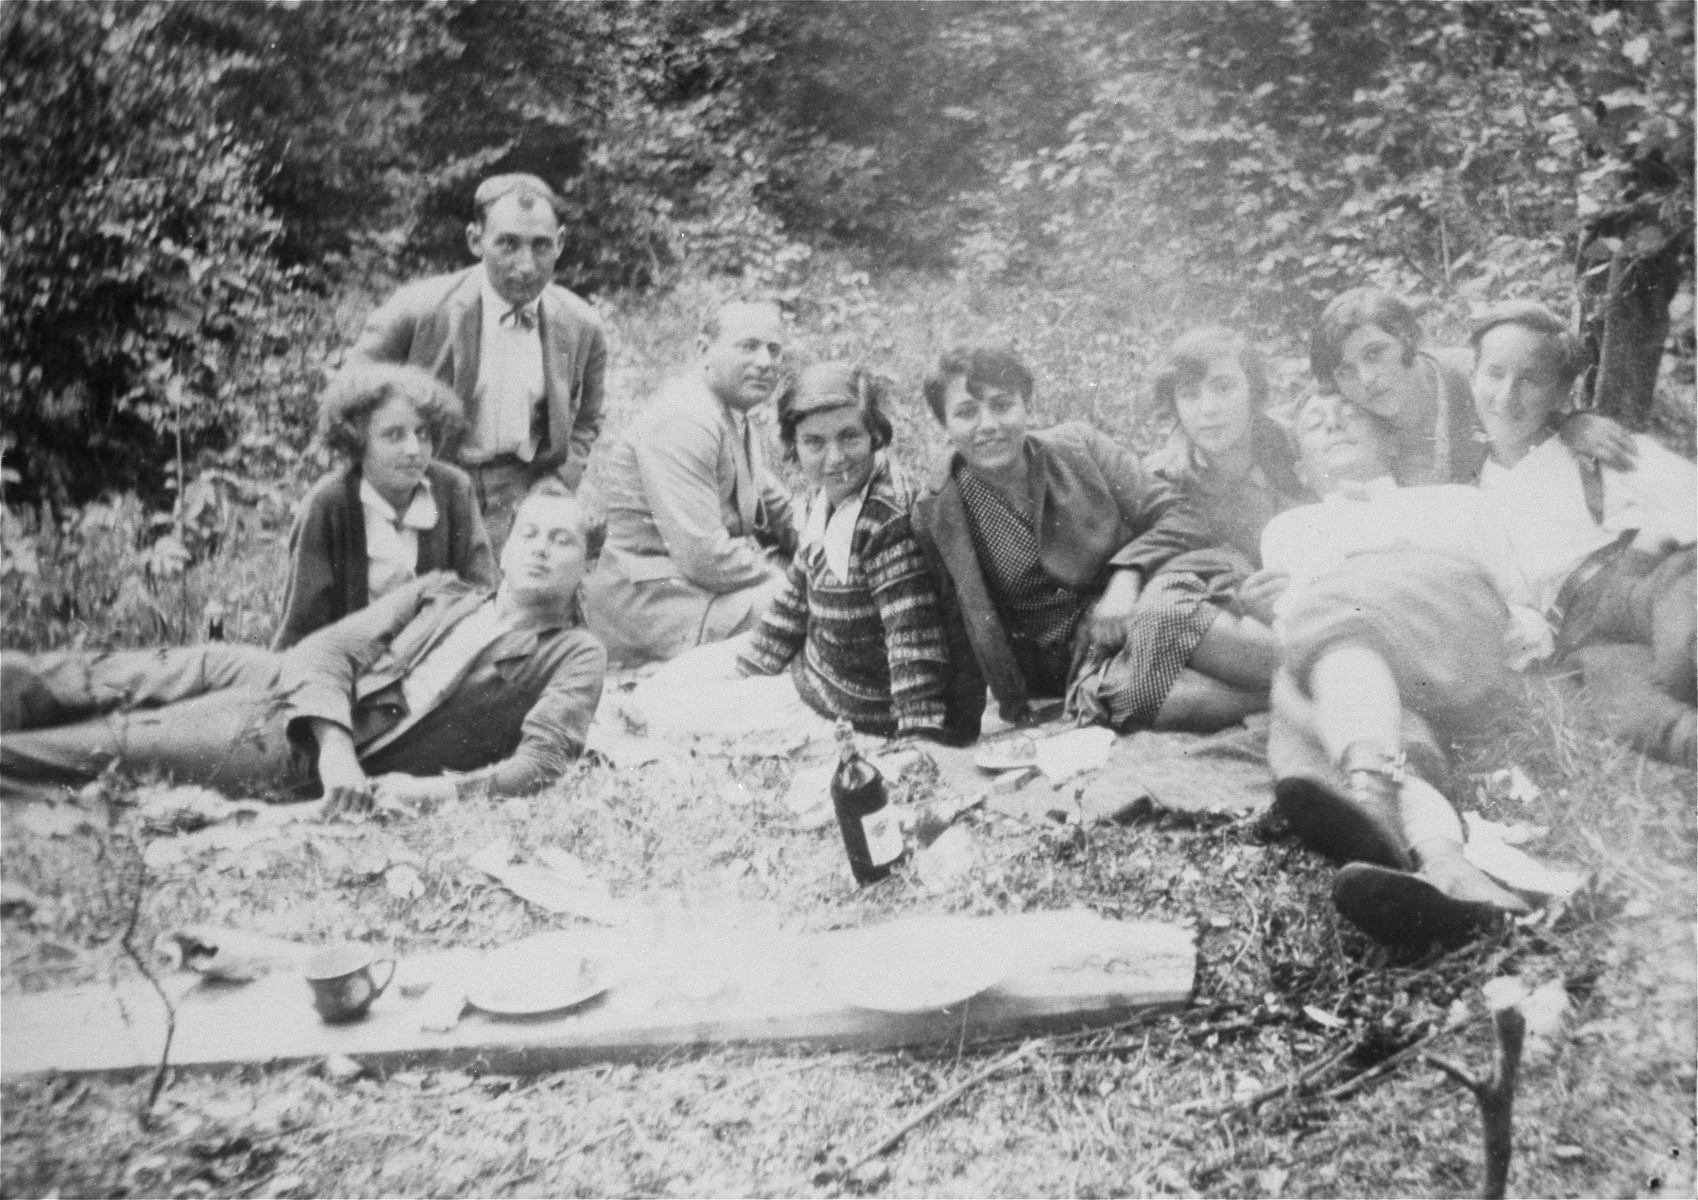 Jewish youth on a picnic in Pozega, Croatia.  Among those pictured is Blanka Klein (later Kupfermann).